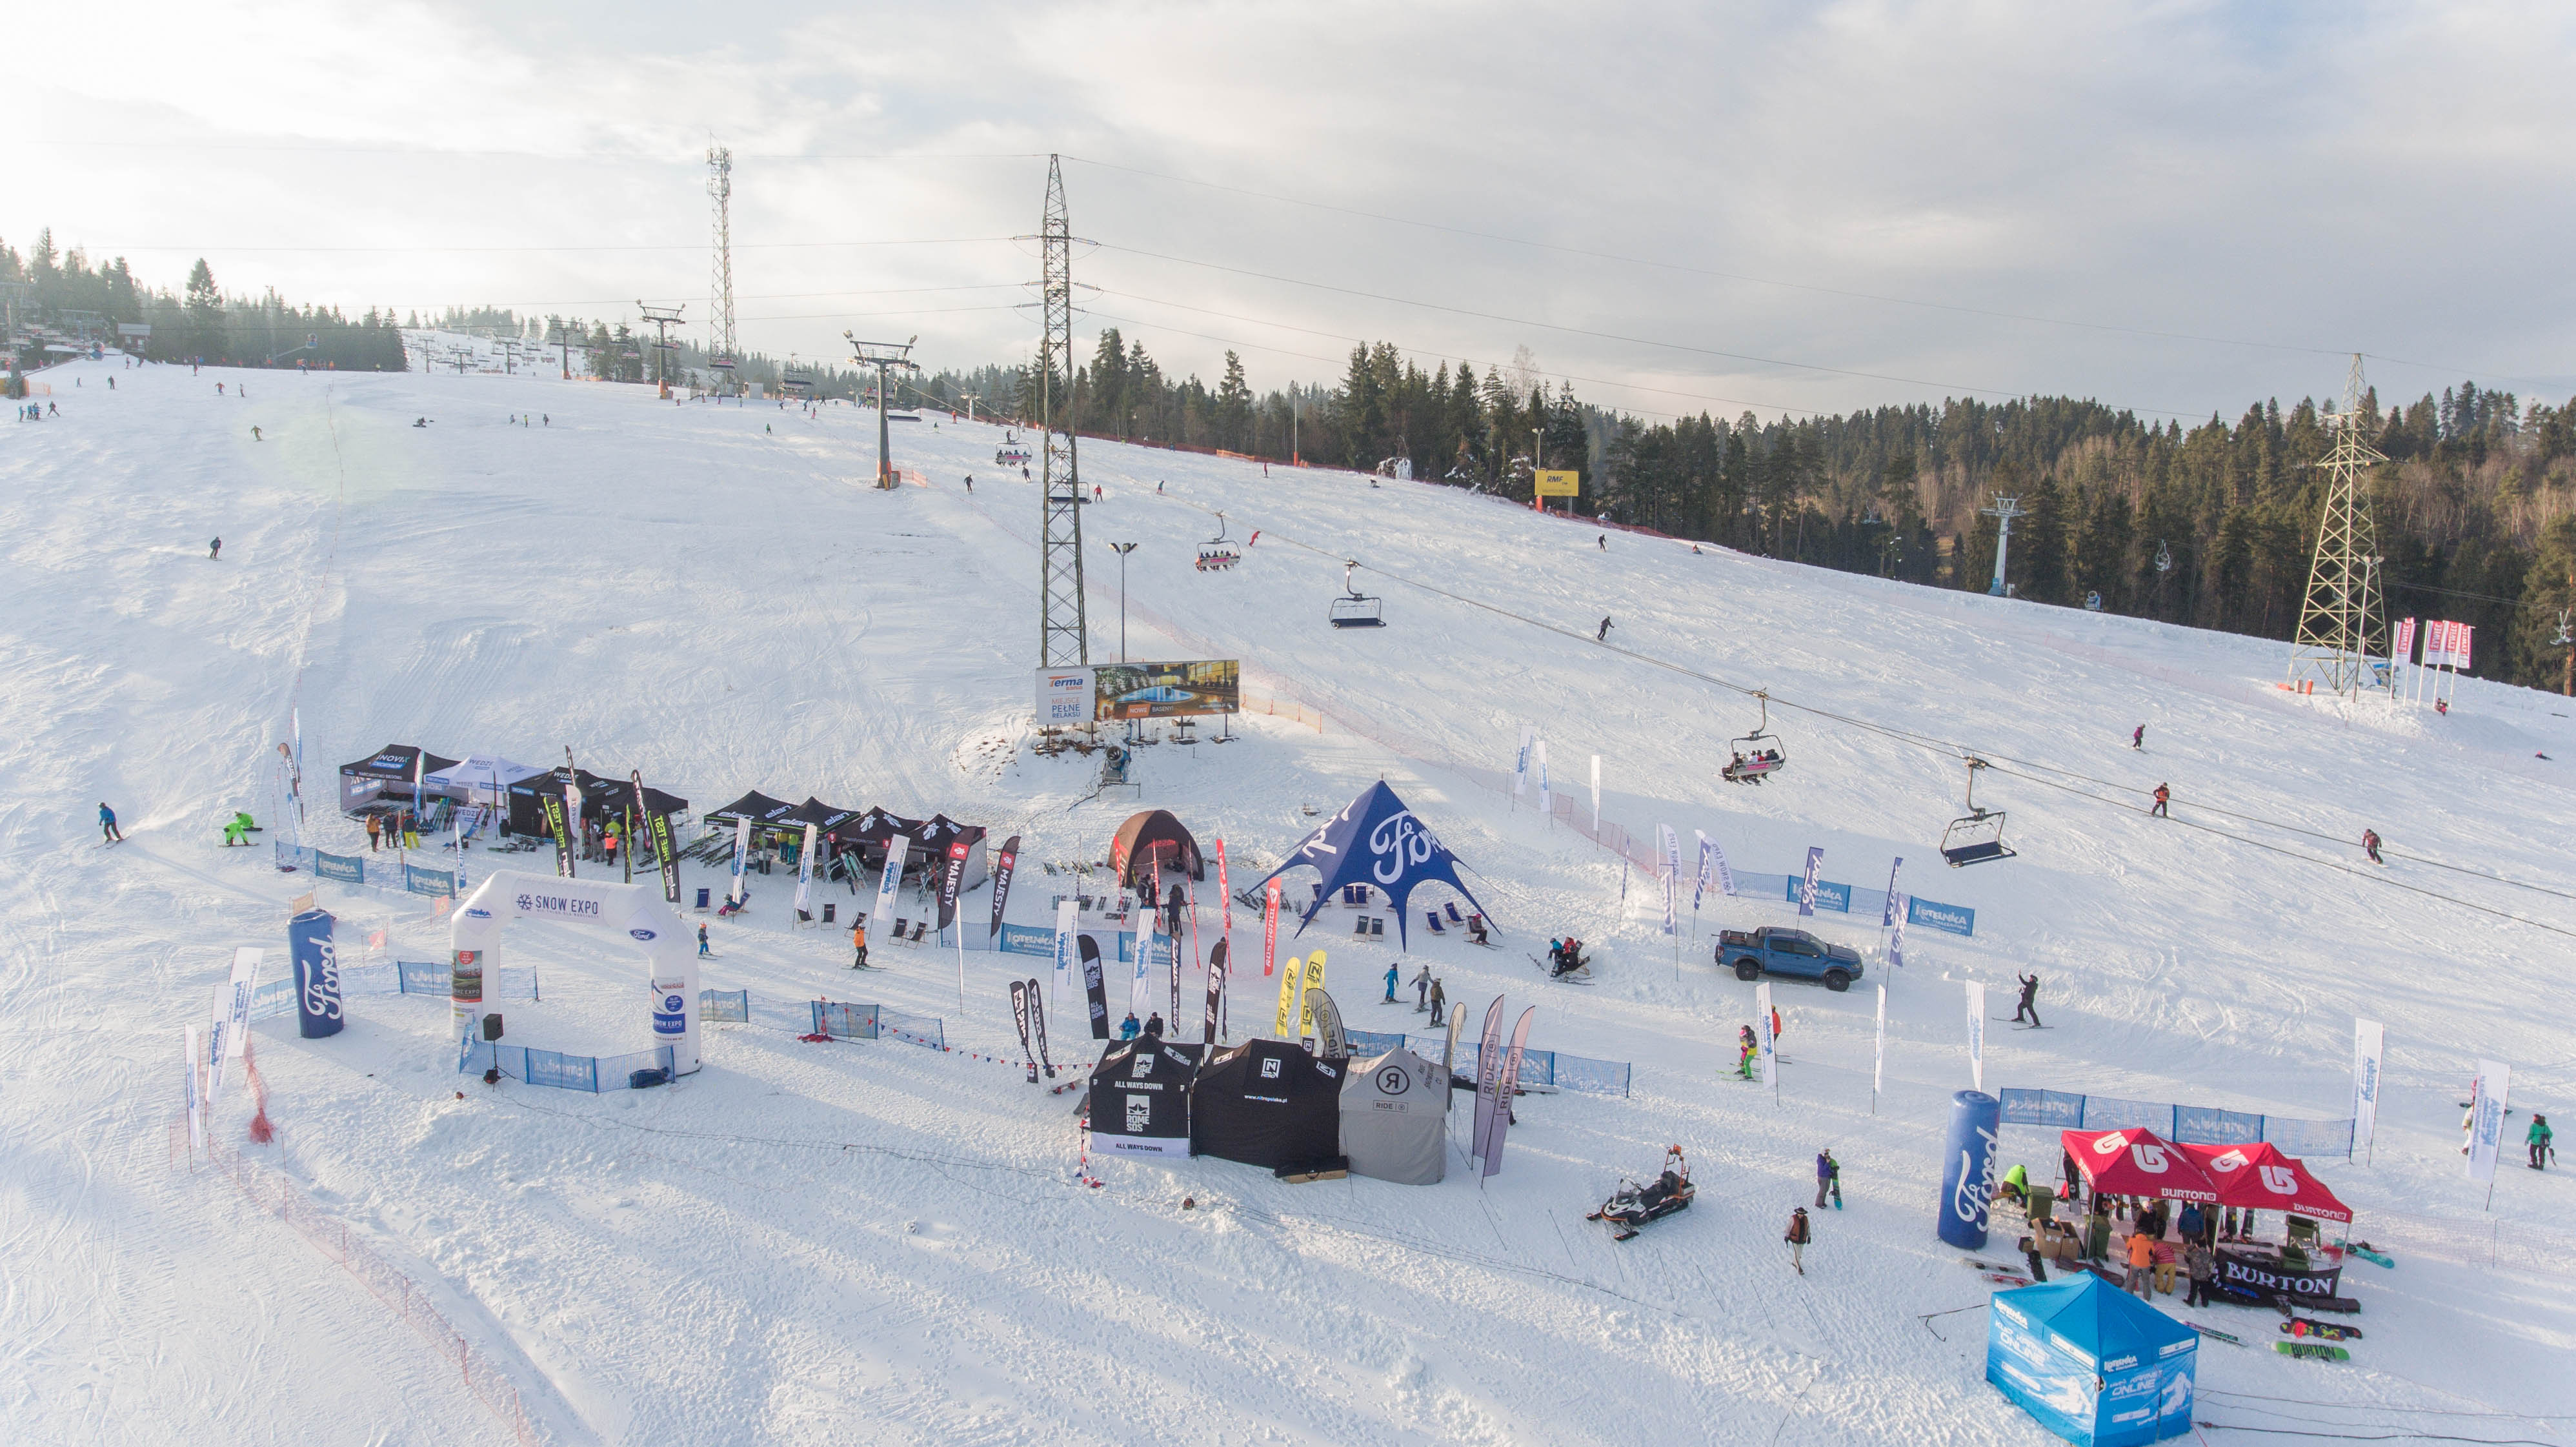 SNOW EXPO - SKI TEST 2020